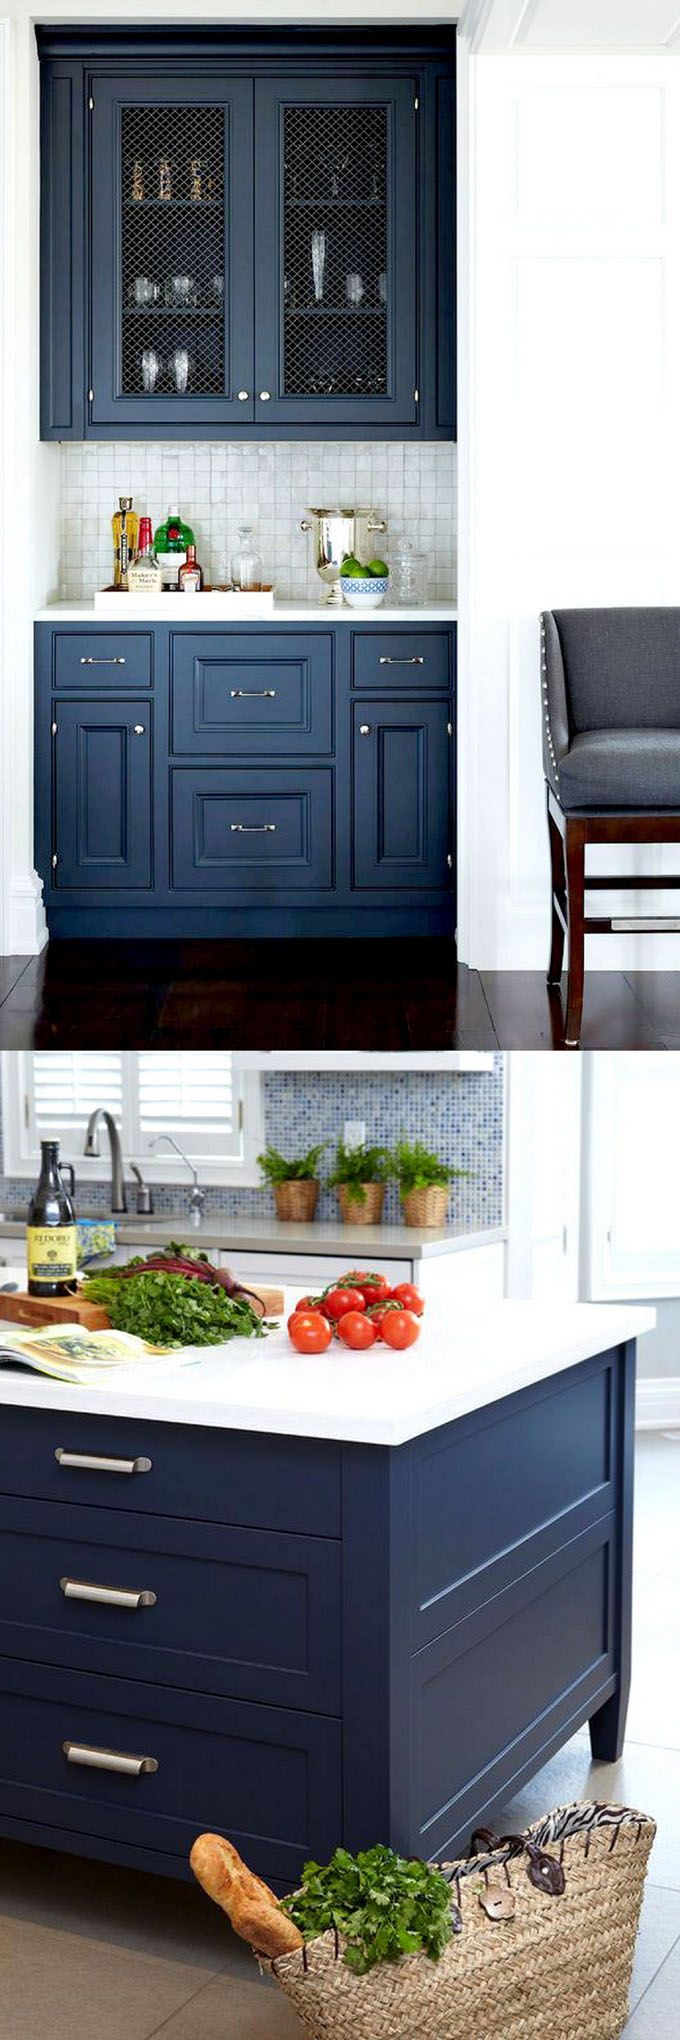 Kitchen Cabinet Paint Colors Best 25 Cabinet Paint Colors Ideas On Pinterest  Cabinet Colors